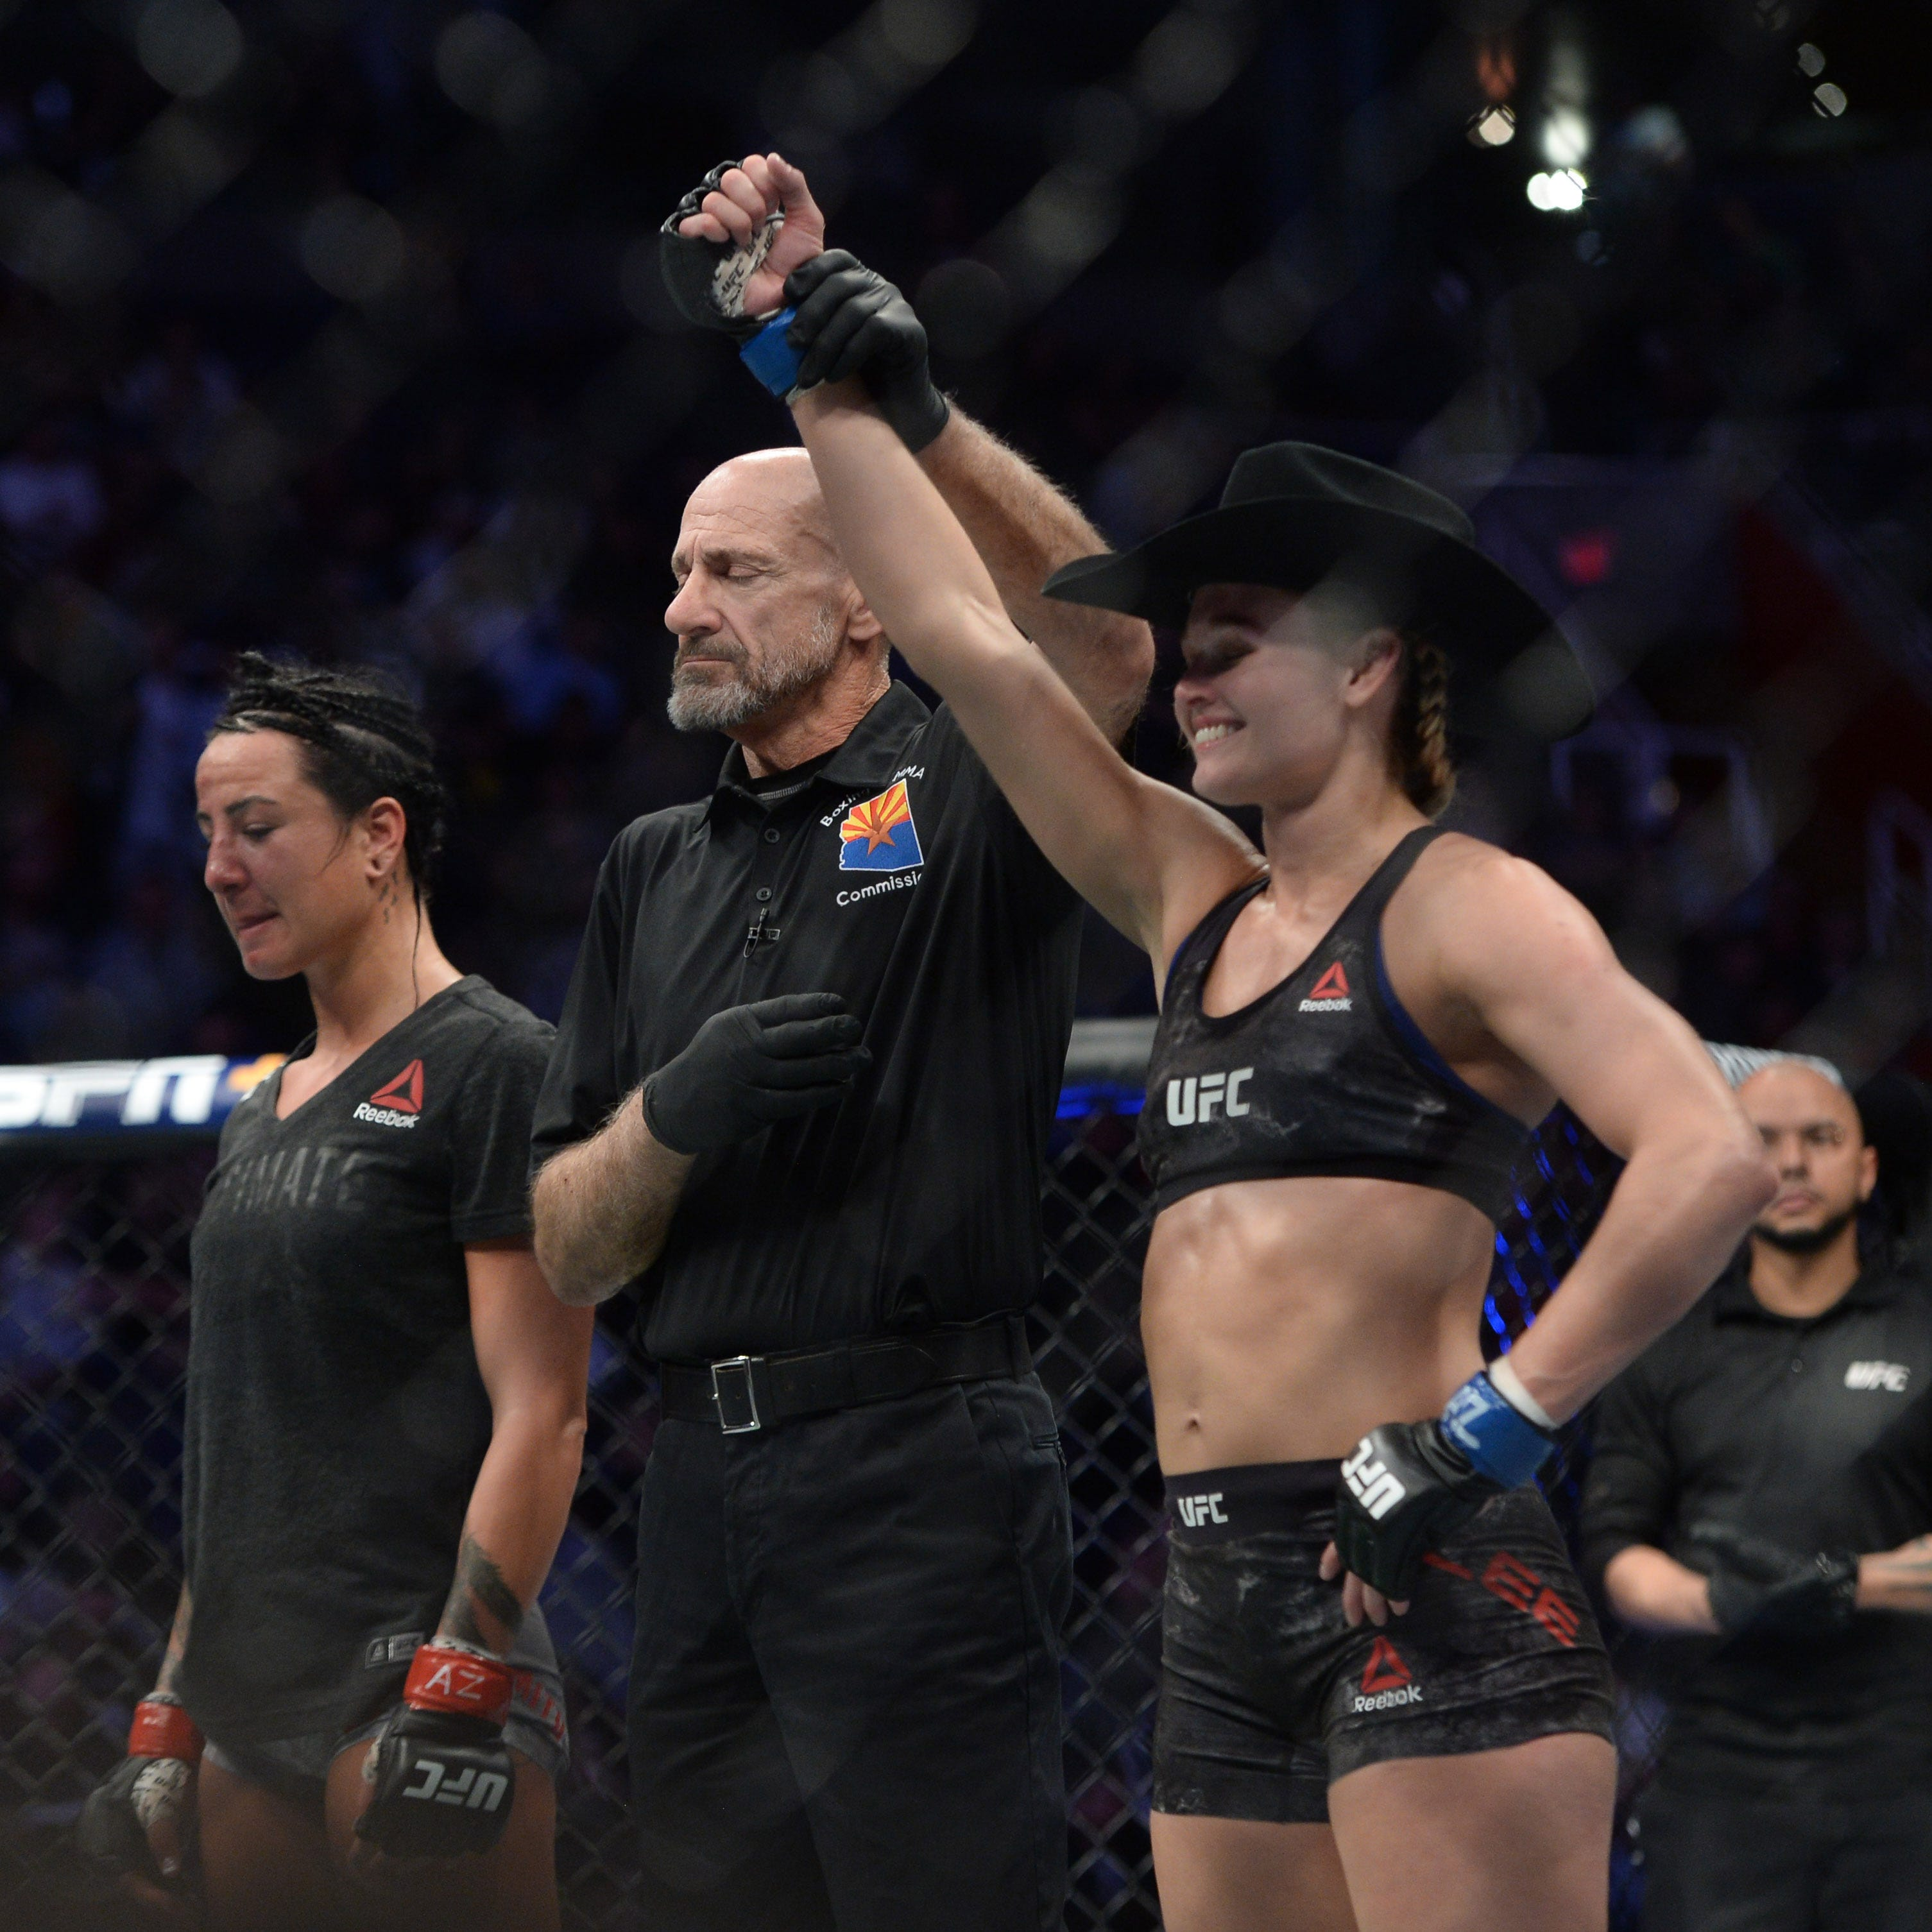 Shreveport's Andrea Lee pummels opponent, still undefeated in UFC